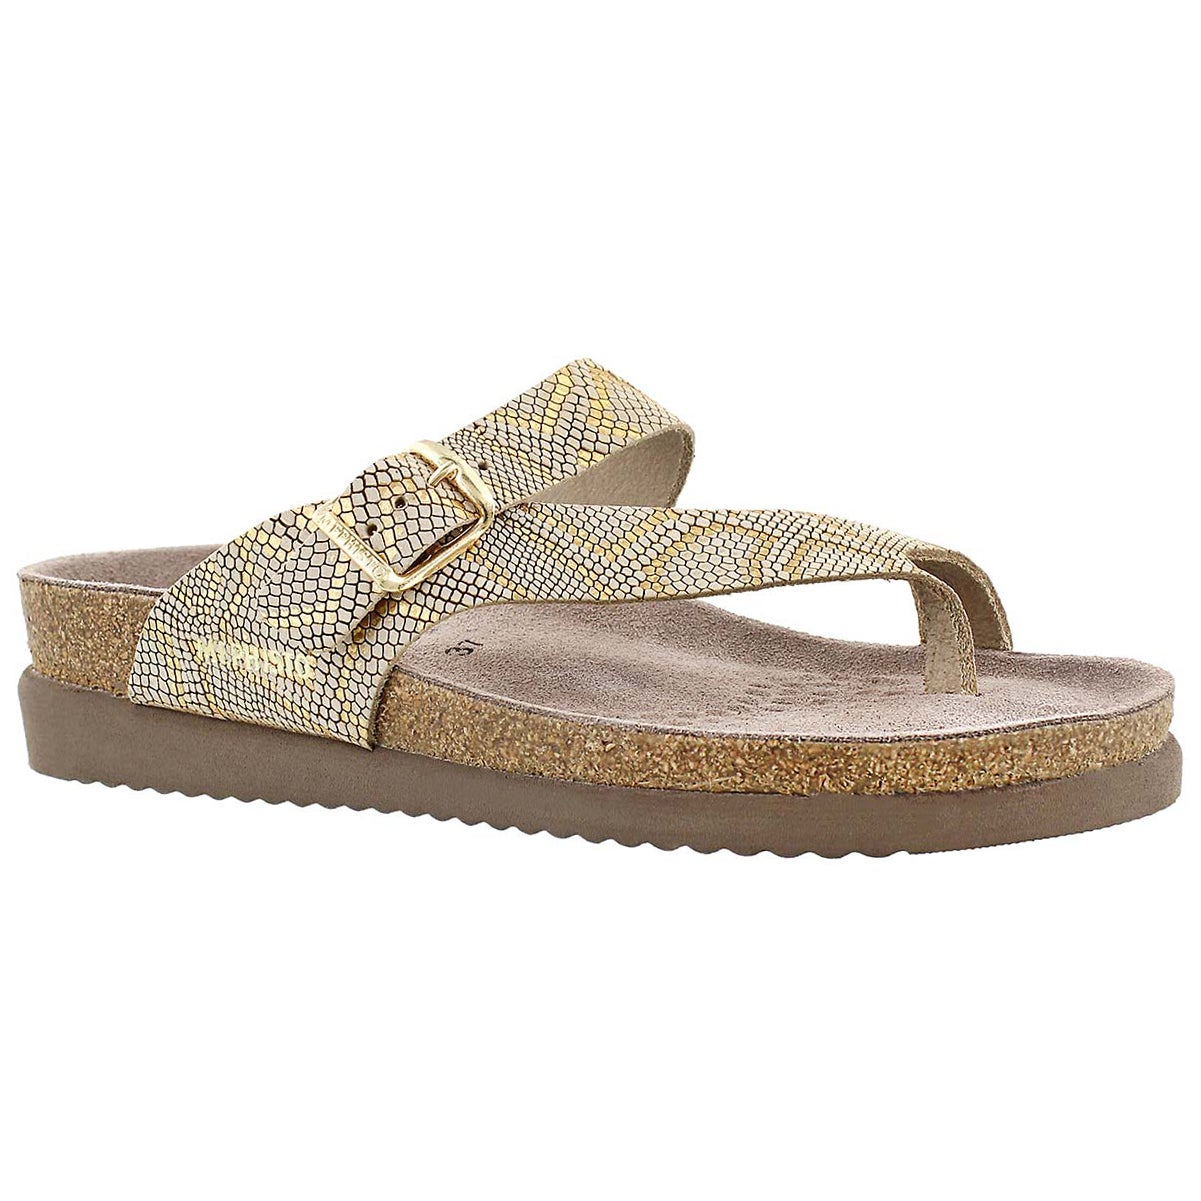 Women's HELEN camel nairobi cork footbed thongs